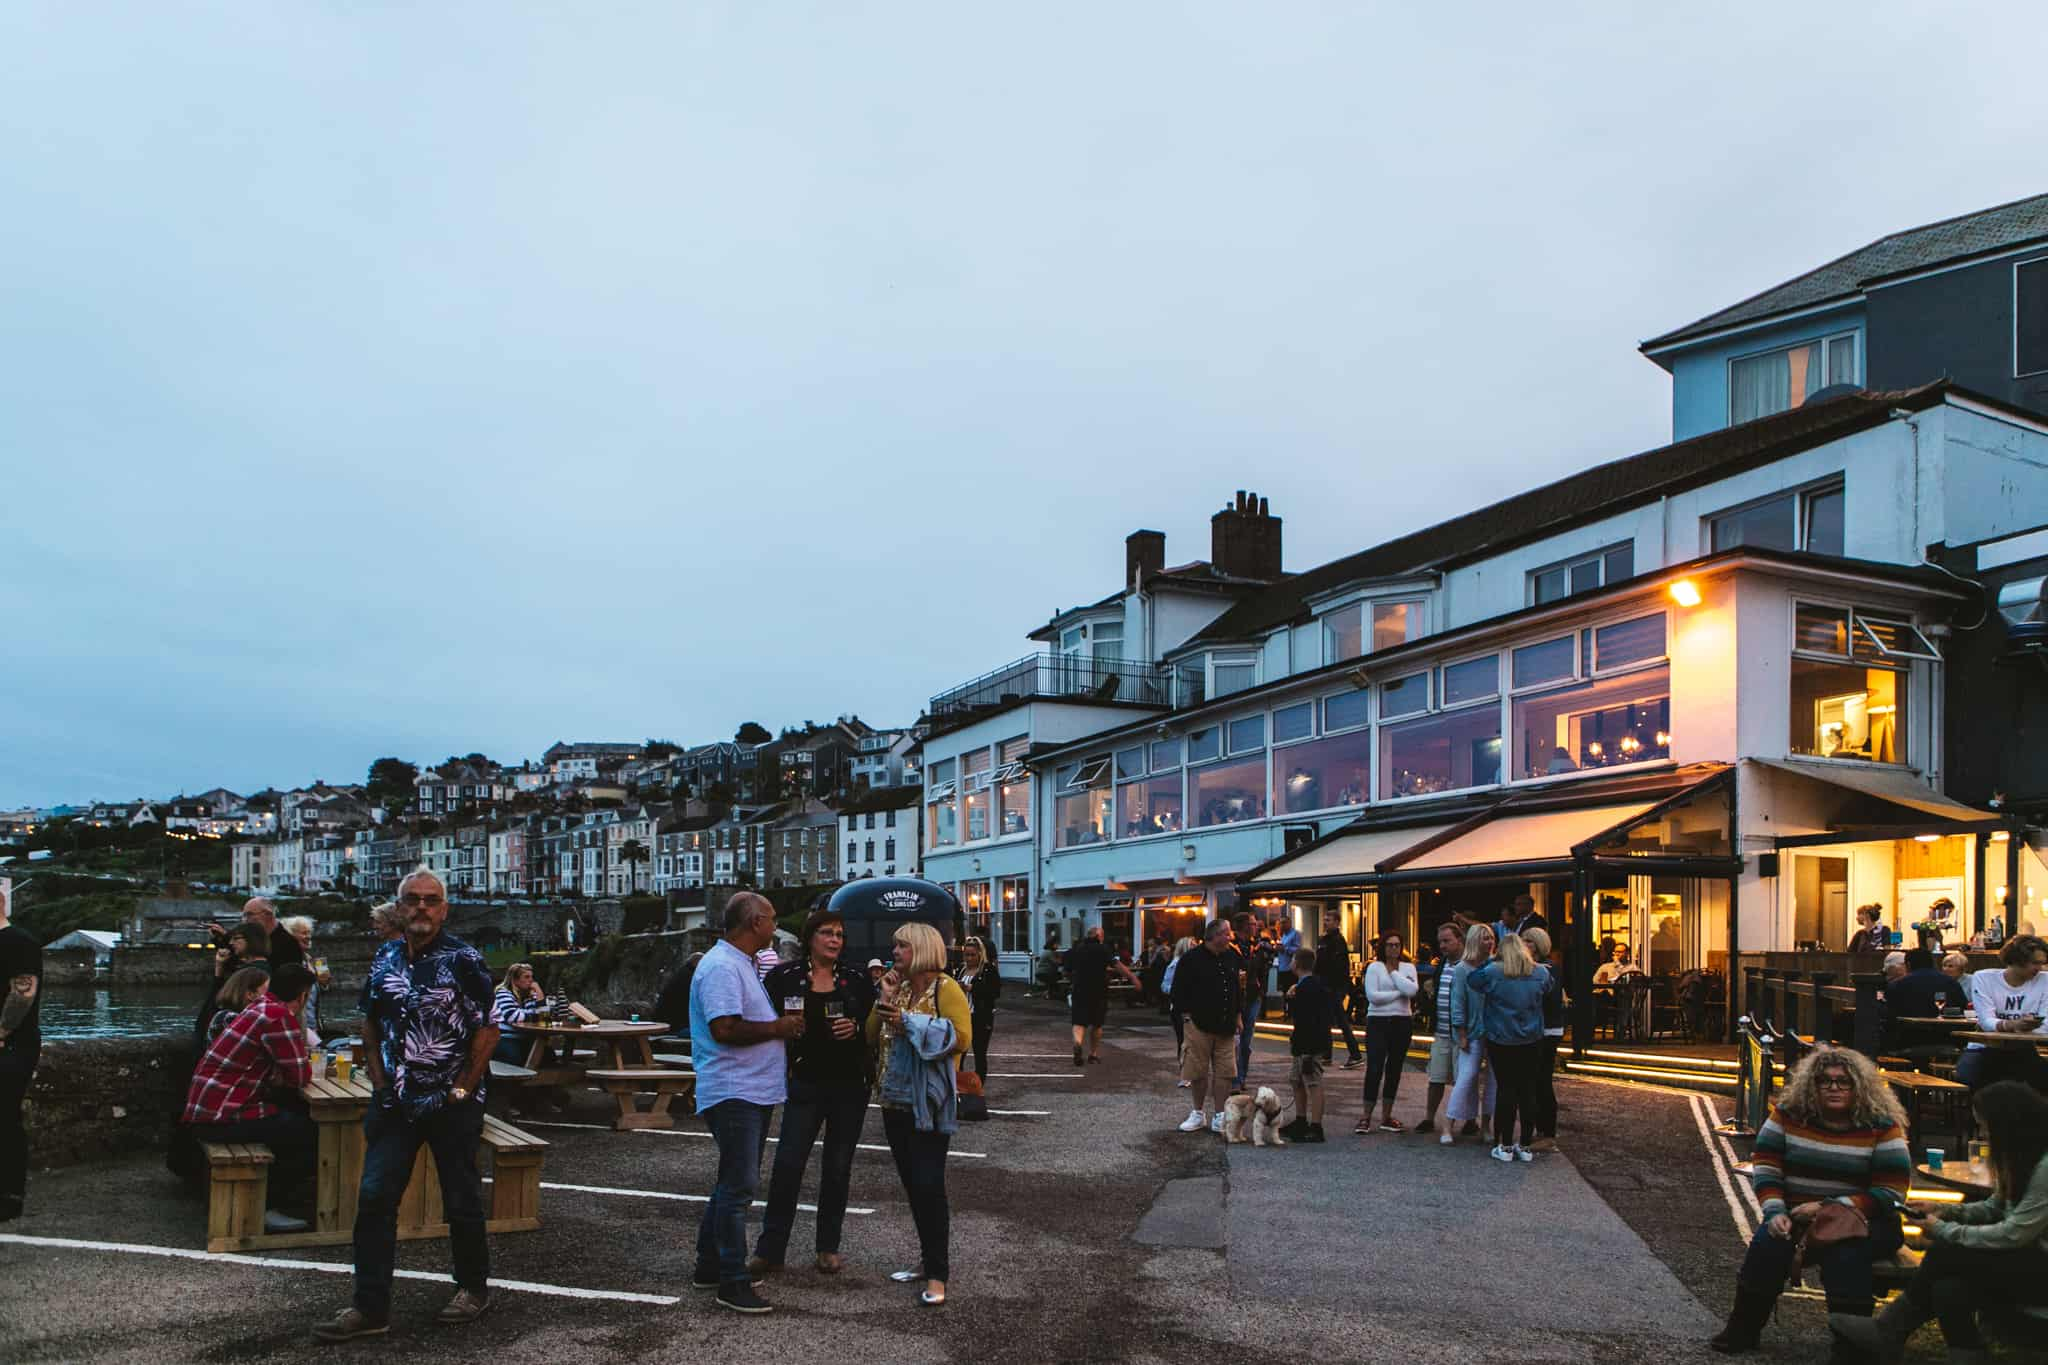 falmouth-week-at-the-working-boat-pub-live-music-events-falmouth-cornwall